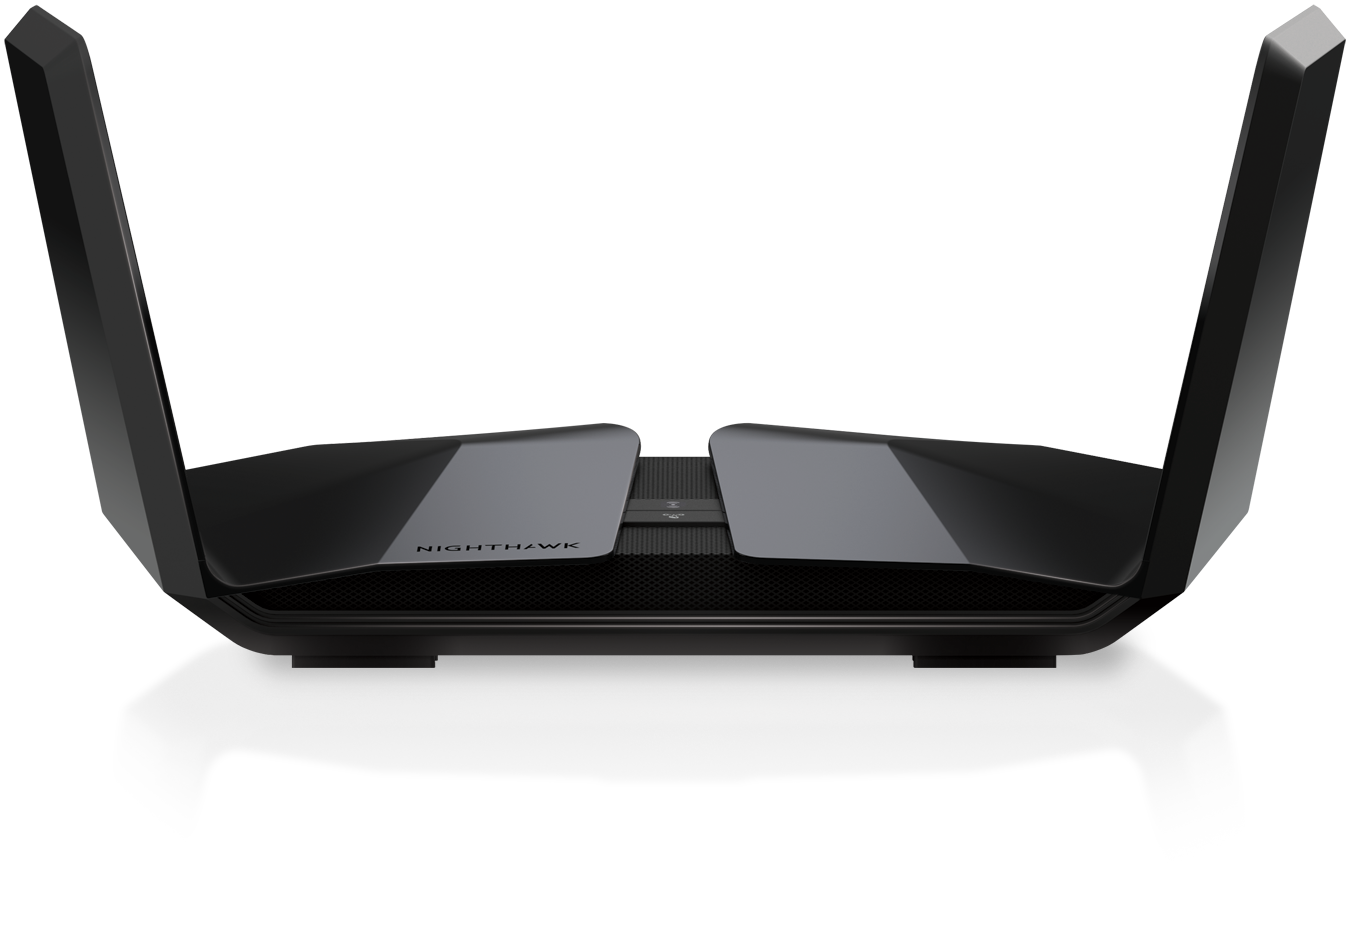 Nighthawk Tri-Band AX12 12-Stream Wi-Fi 6-router